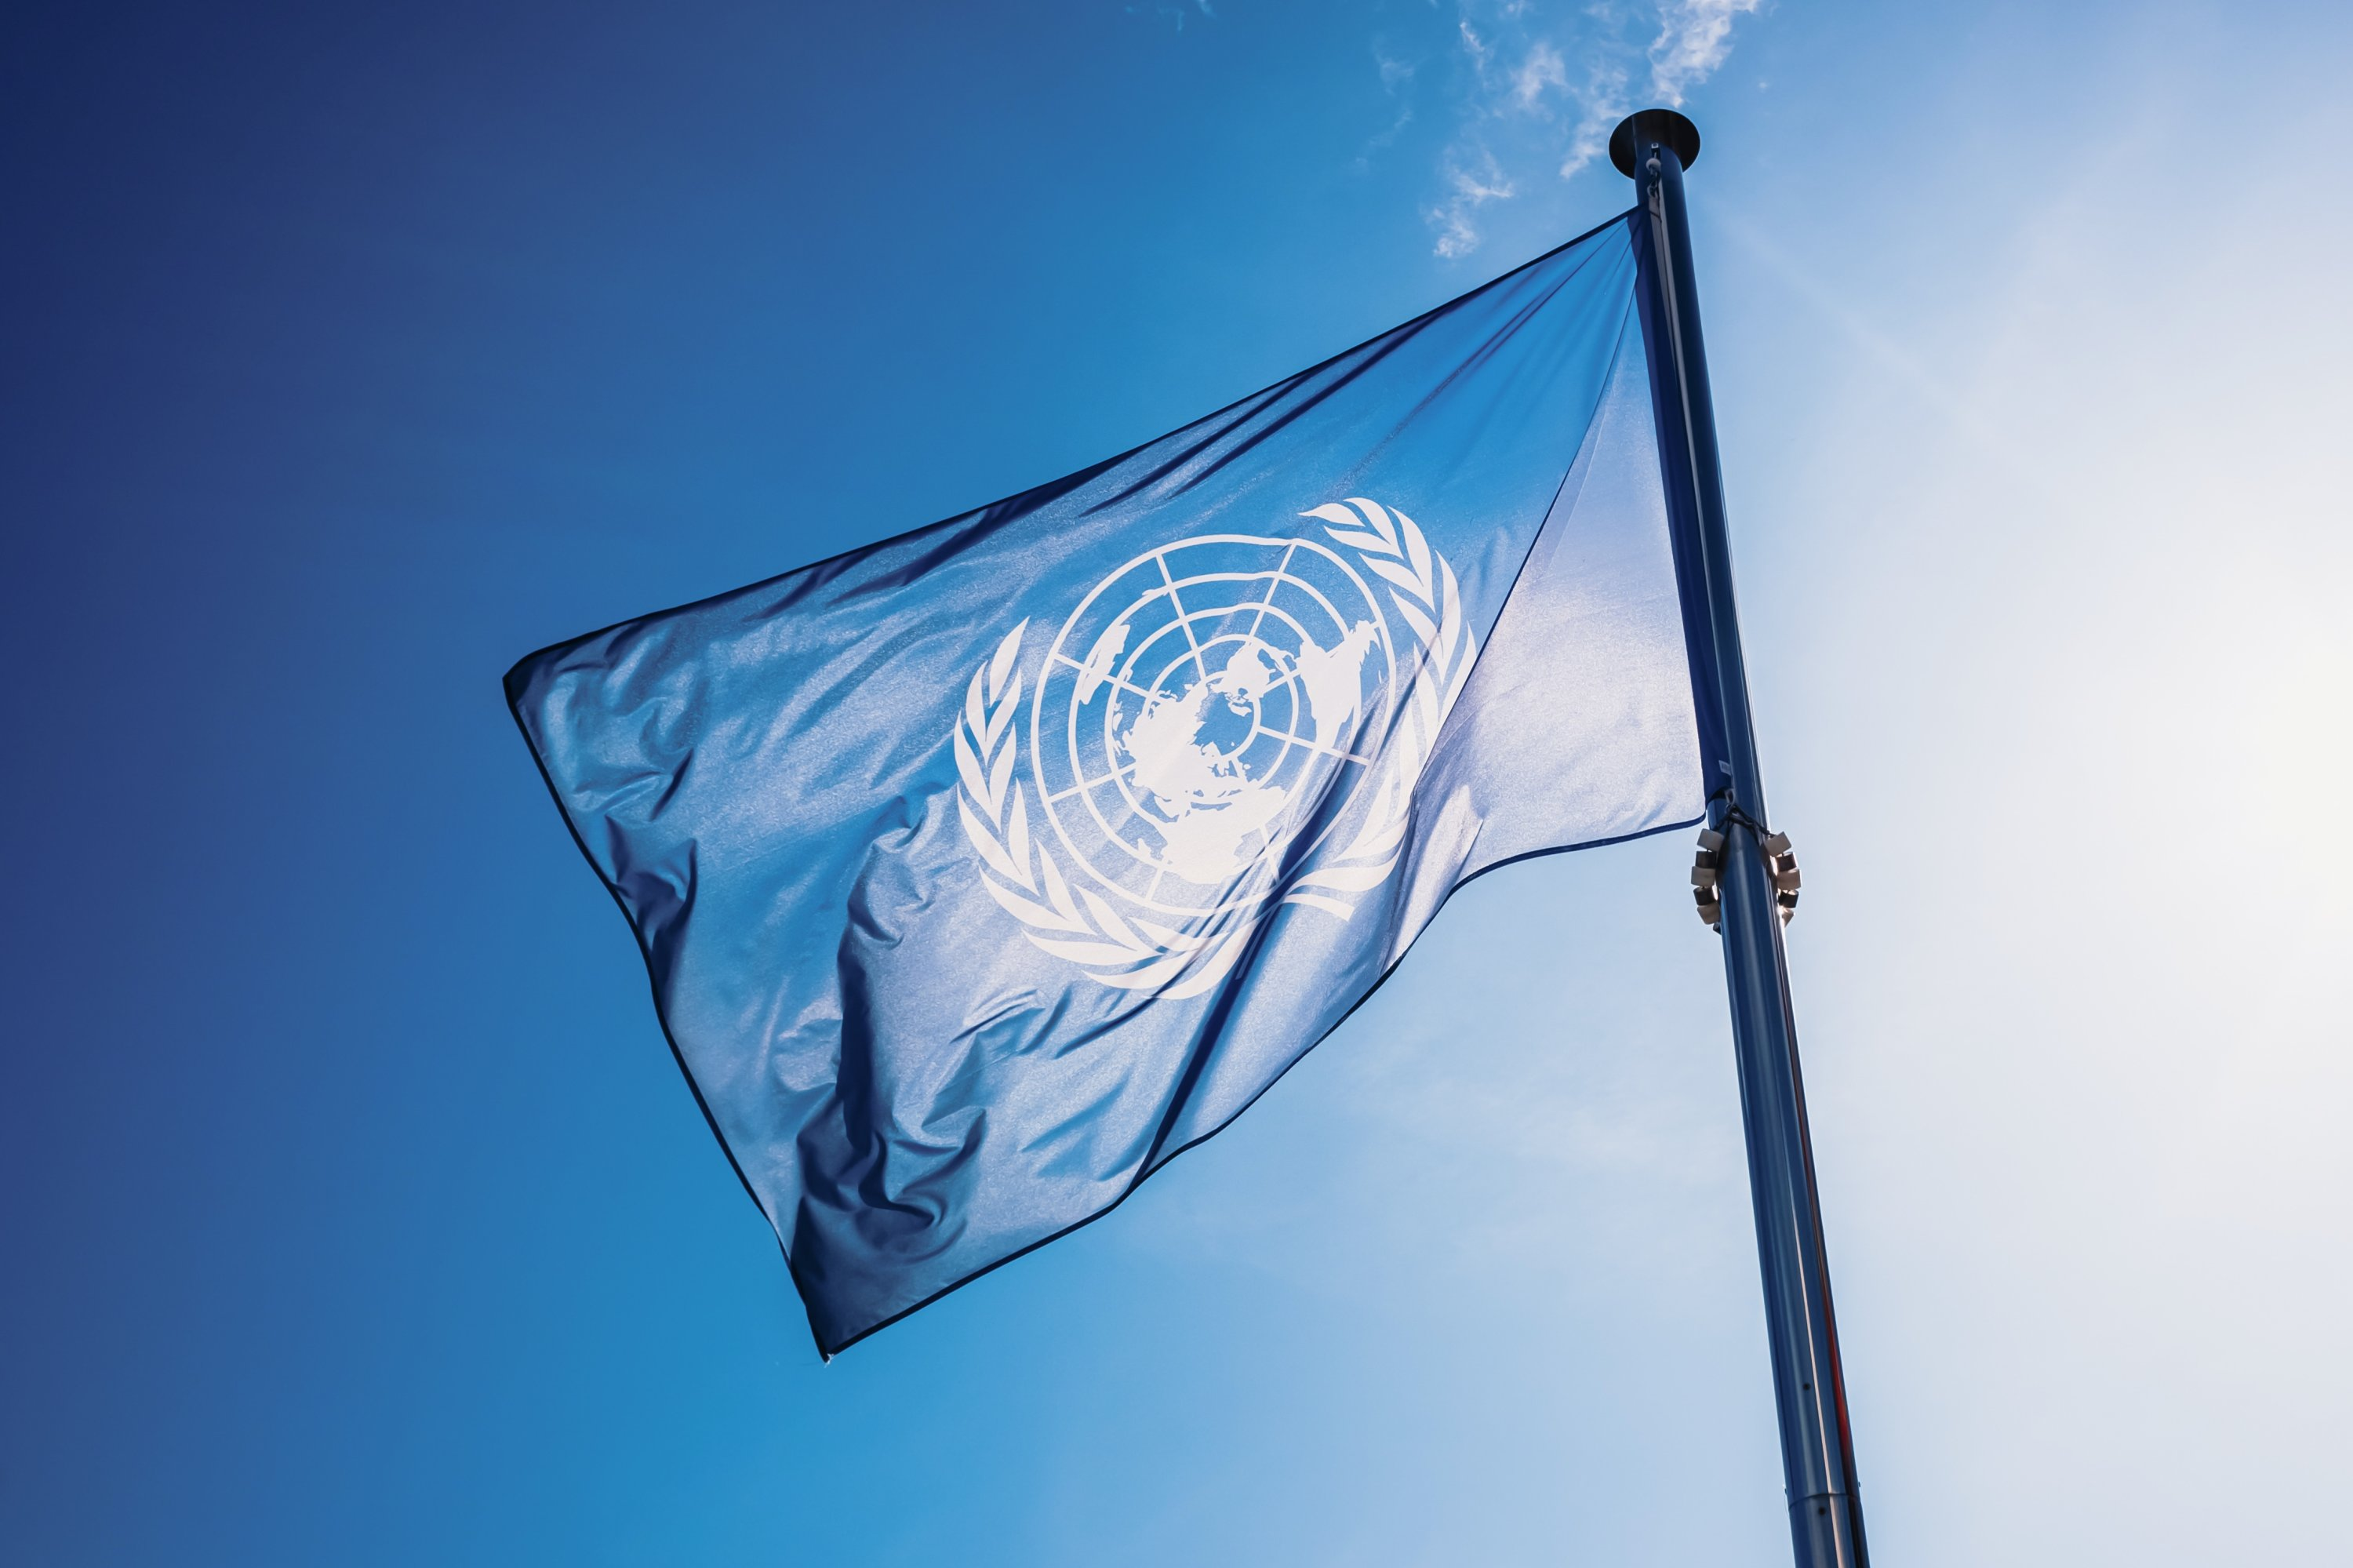 The United Nations flag waves in the sky, Valencia, Spain, Nov. 2, 2019. (Photo by Shutterstock)